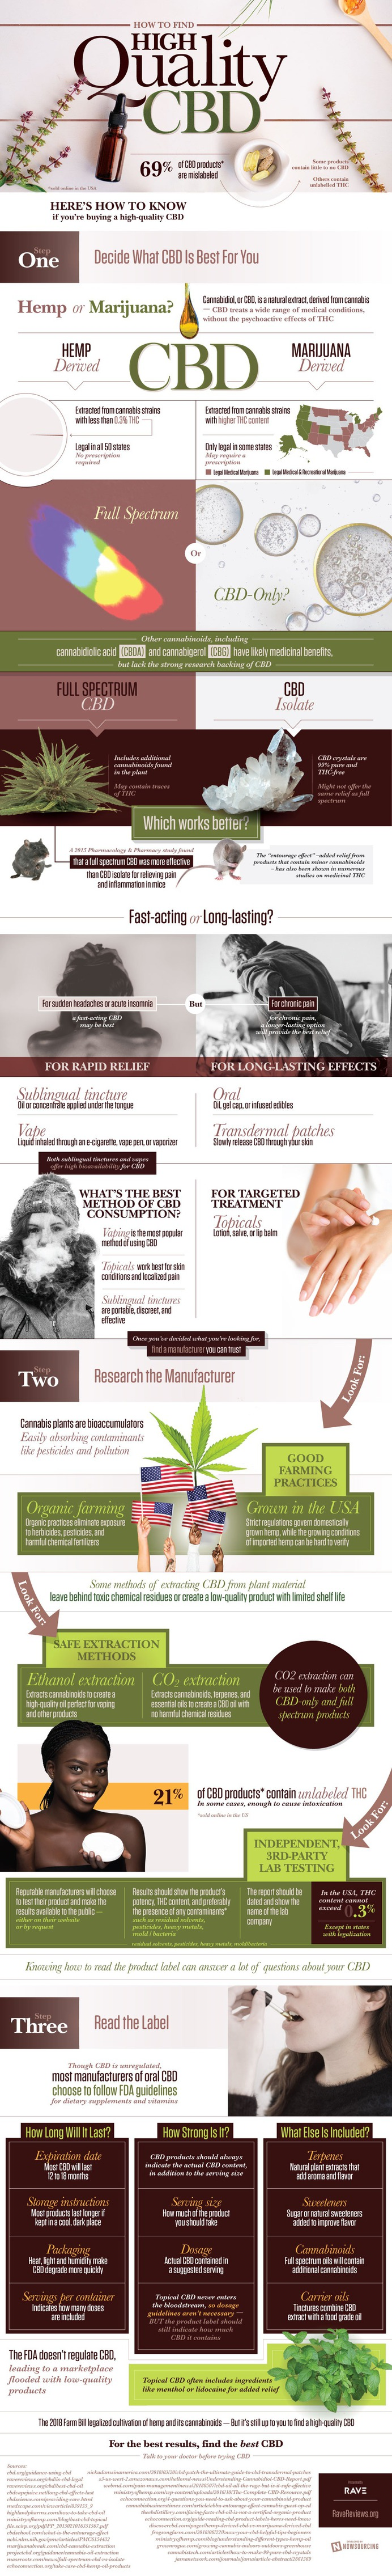 How to Find Good CBD - it's not regulated but you can find it if you know what to look for.